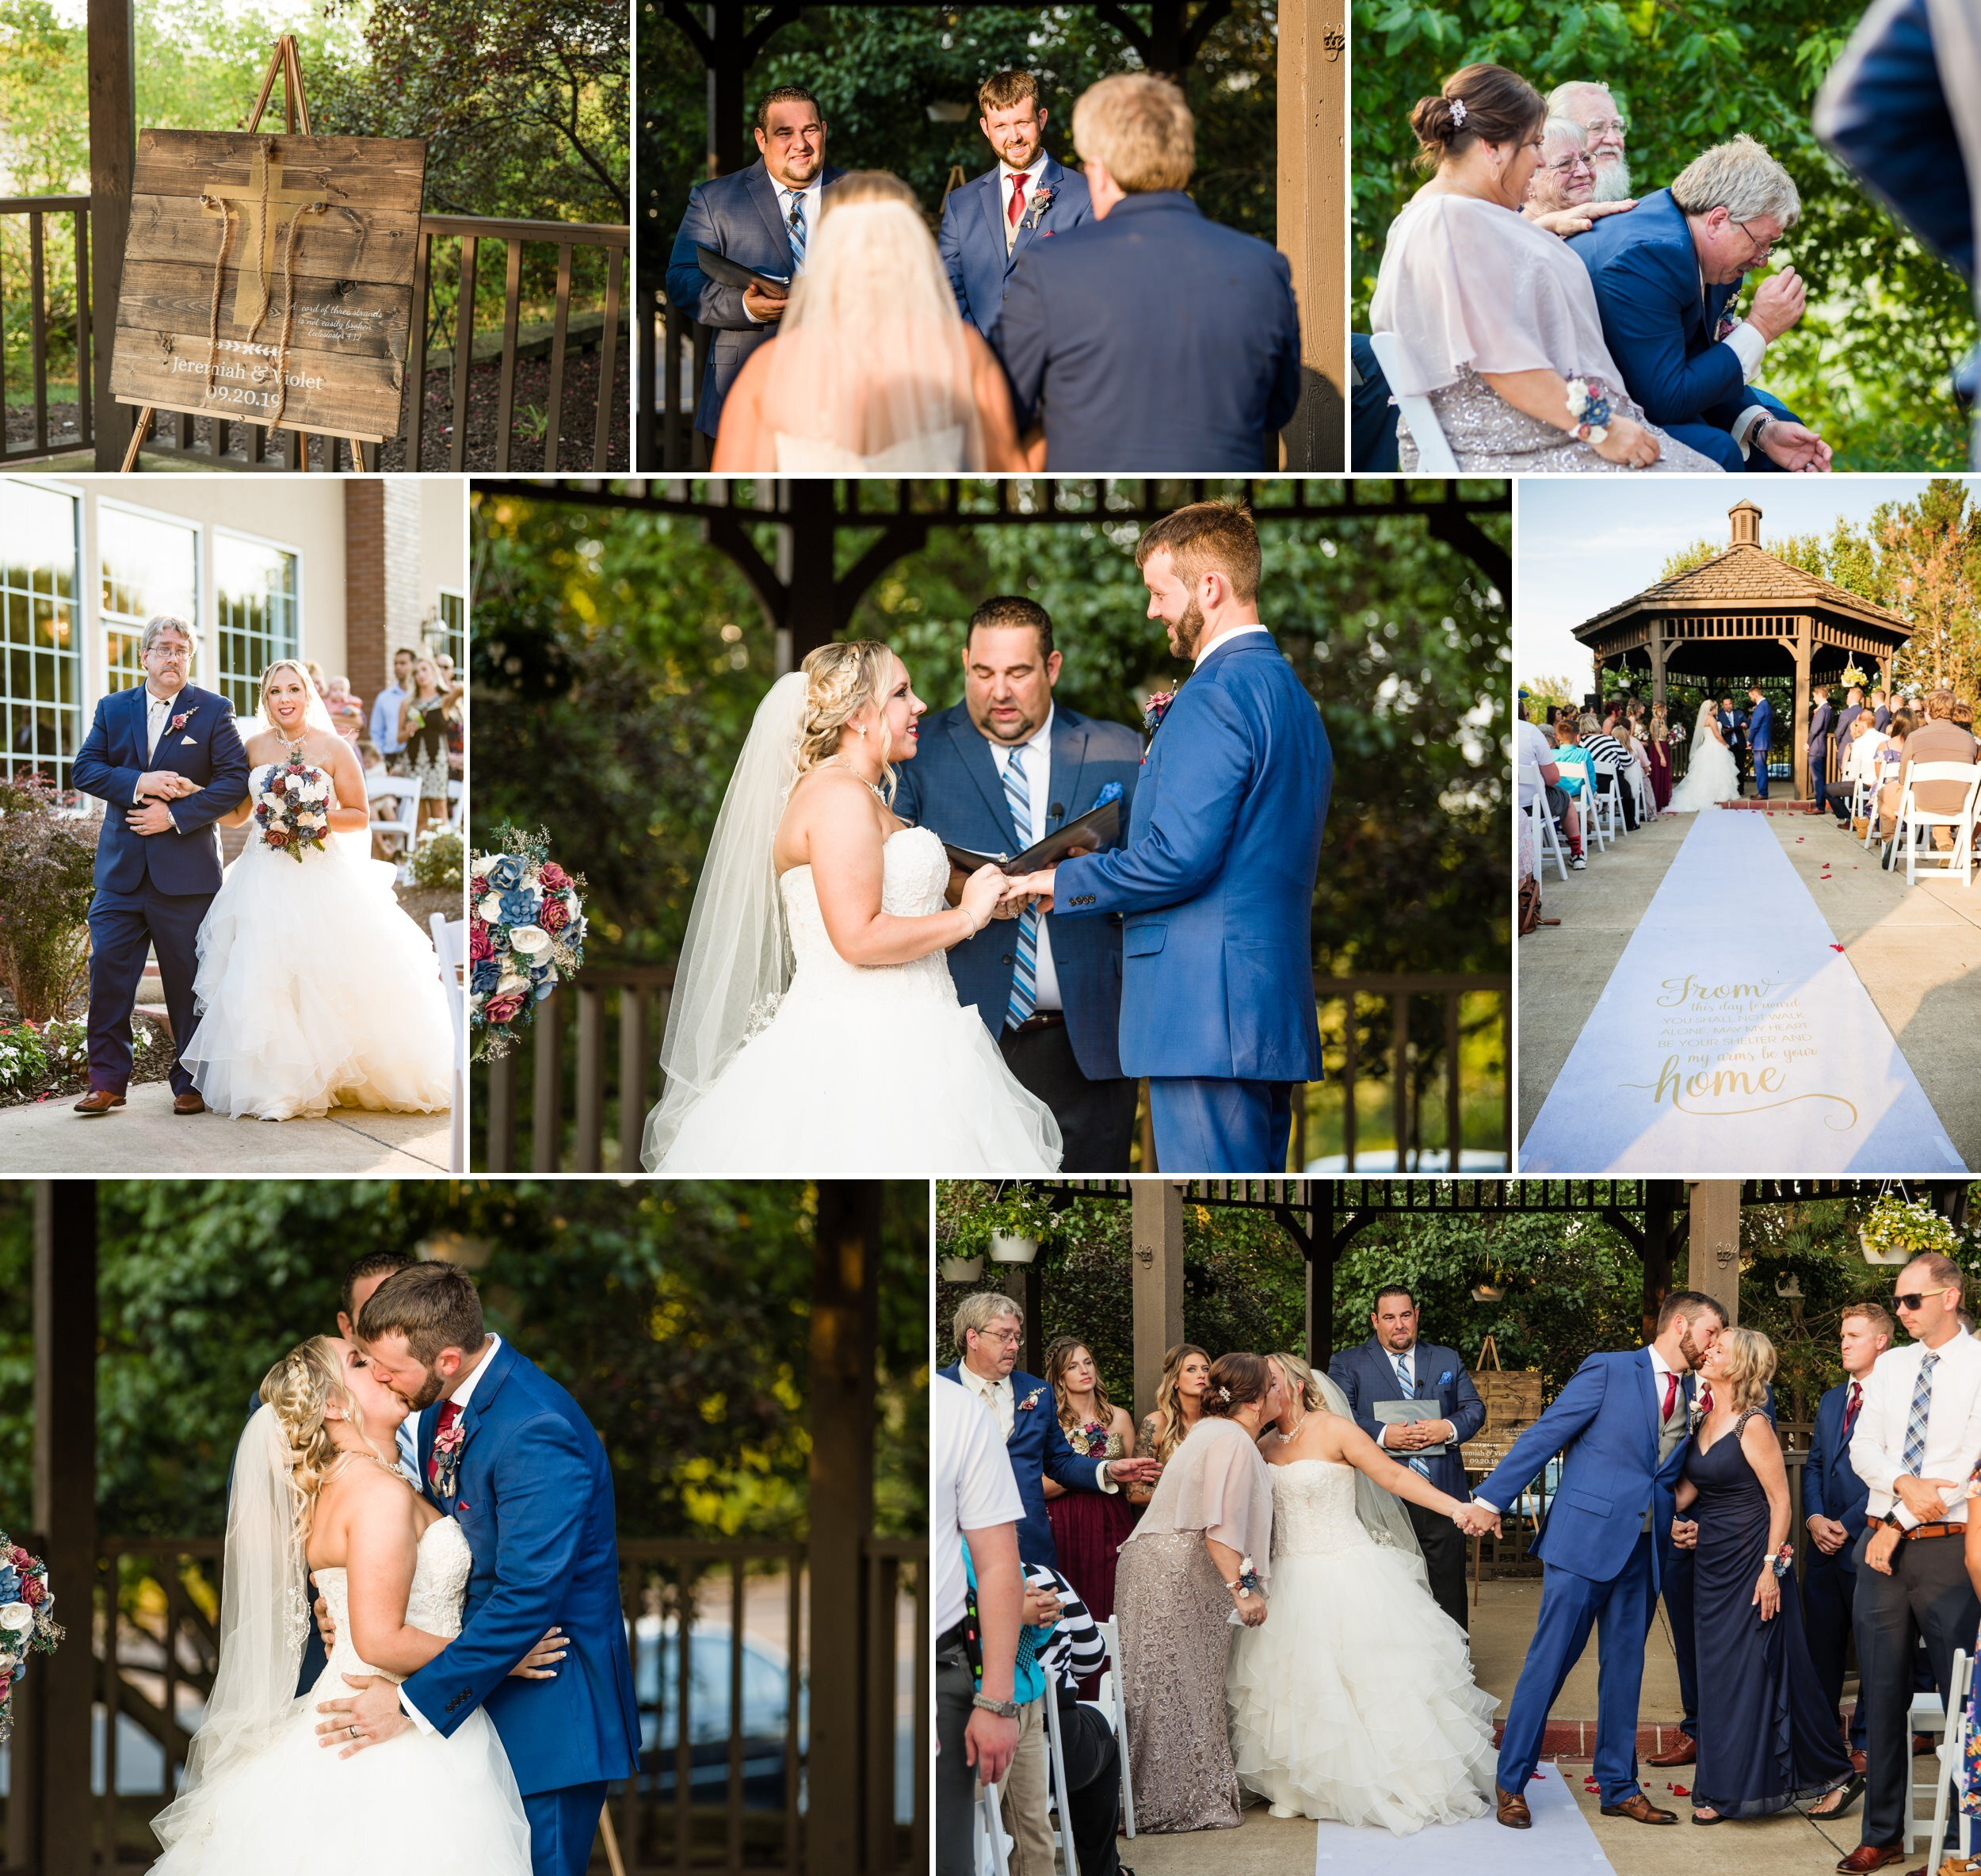 Outdoor September wedding ceremony at Avalon Manor.